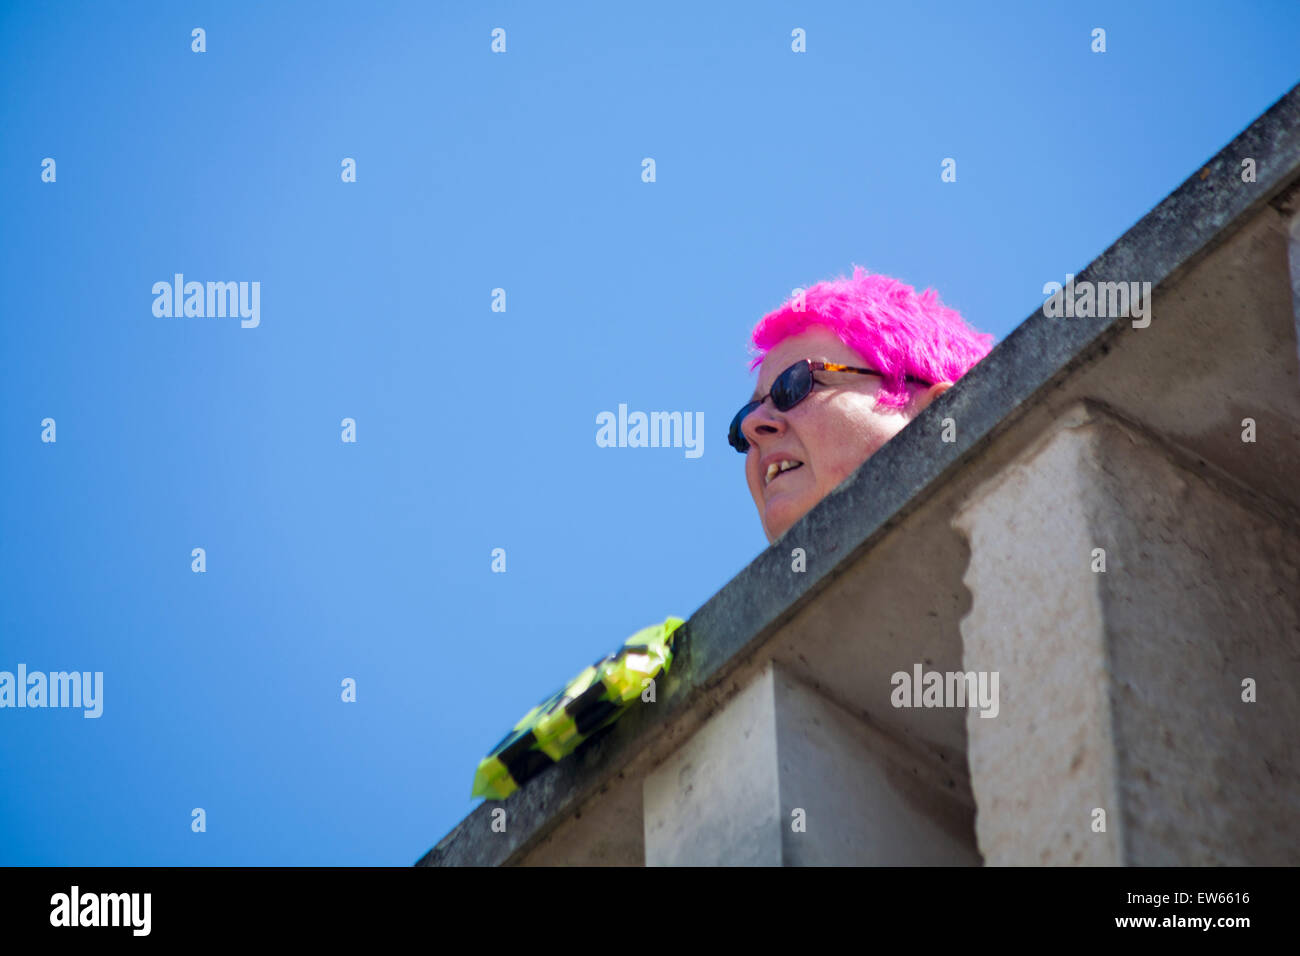 Woman with pink hair wearing sunglasses looking over wall at Weymouth, Dorset in June - Stock Image